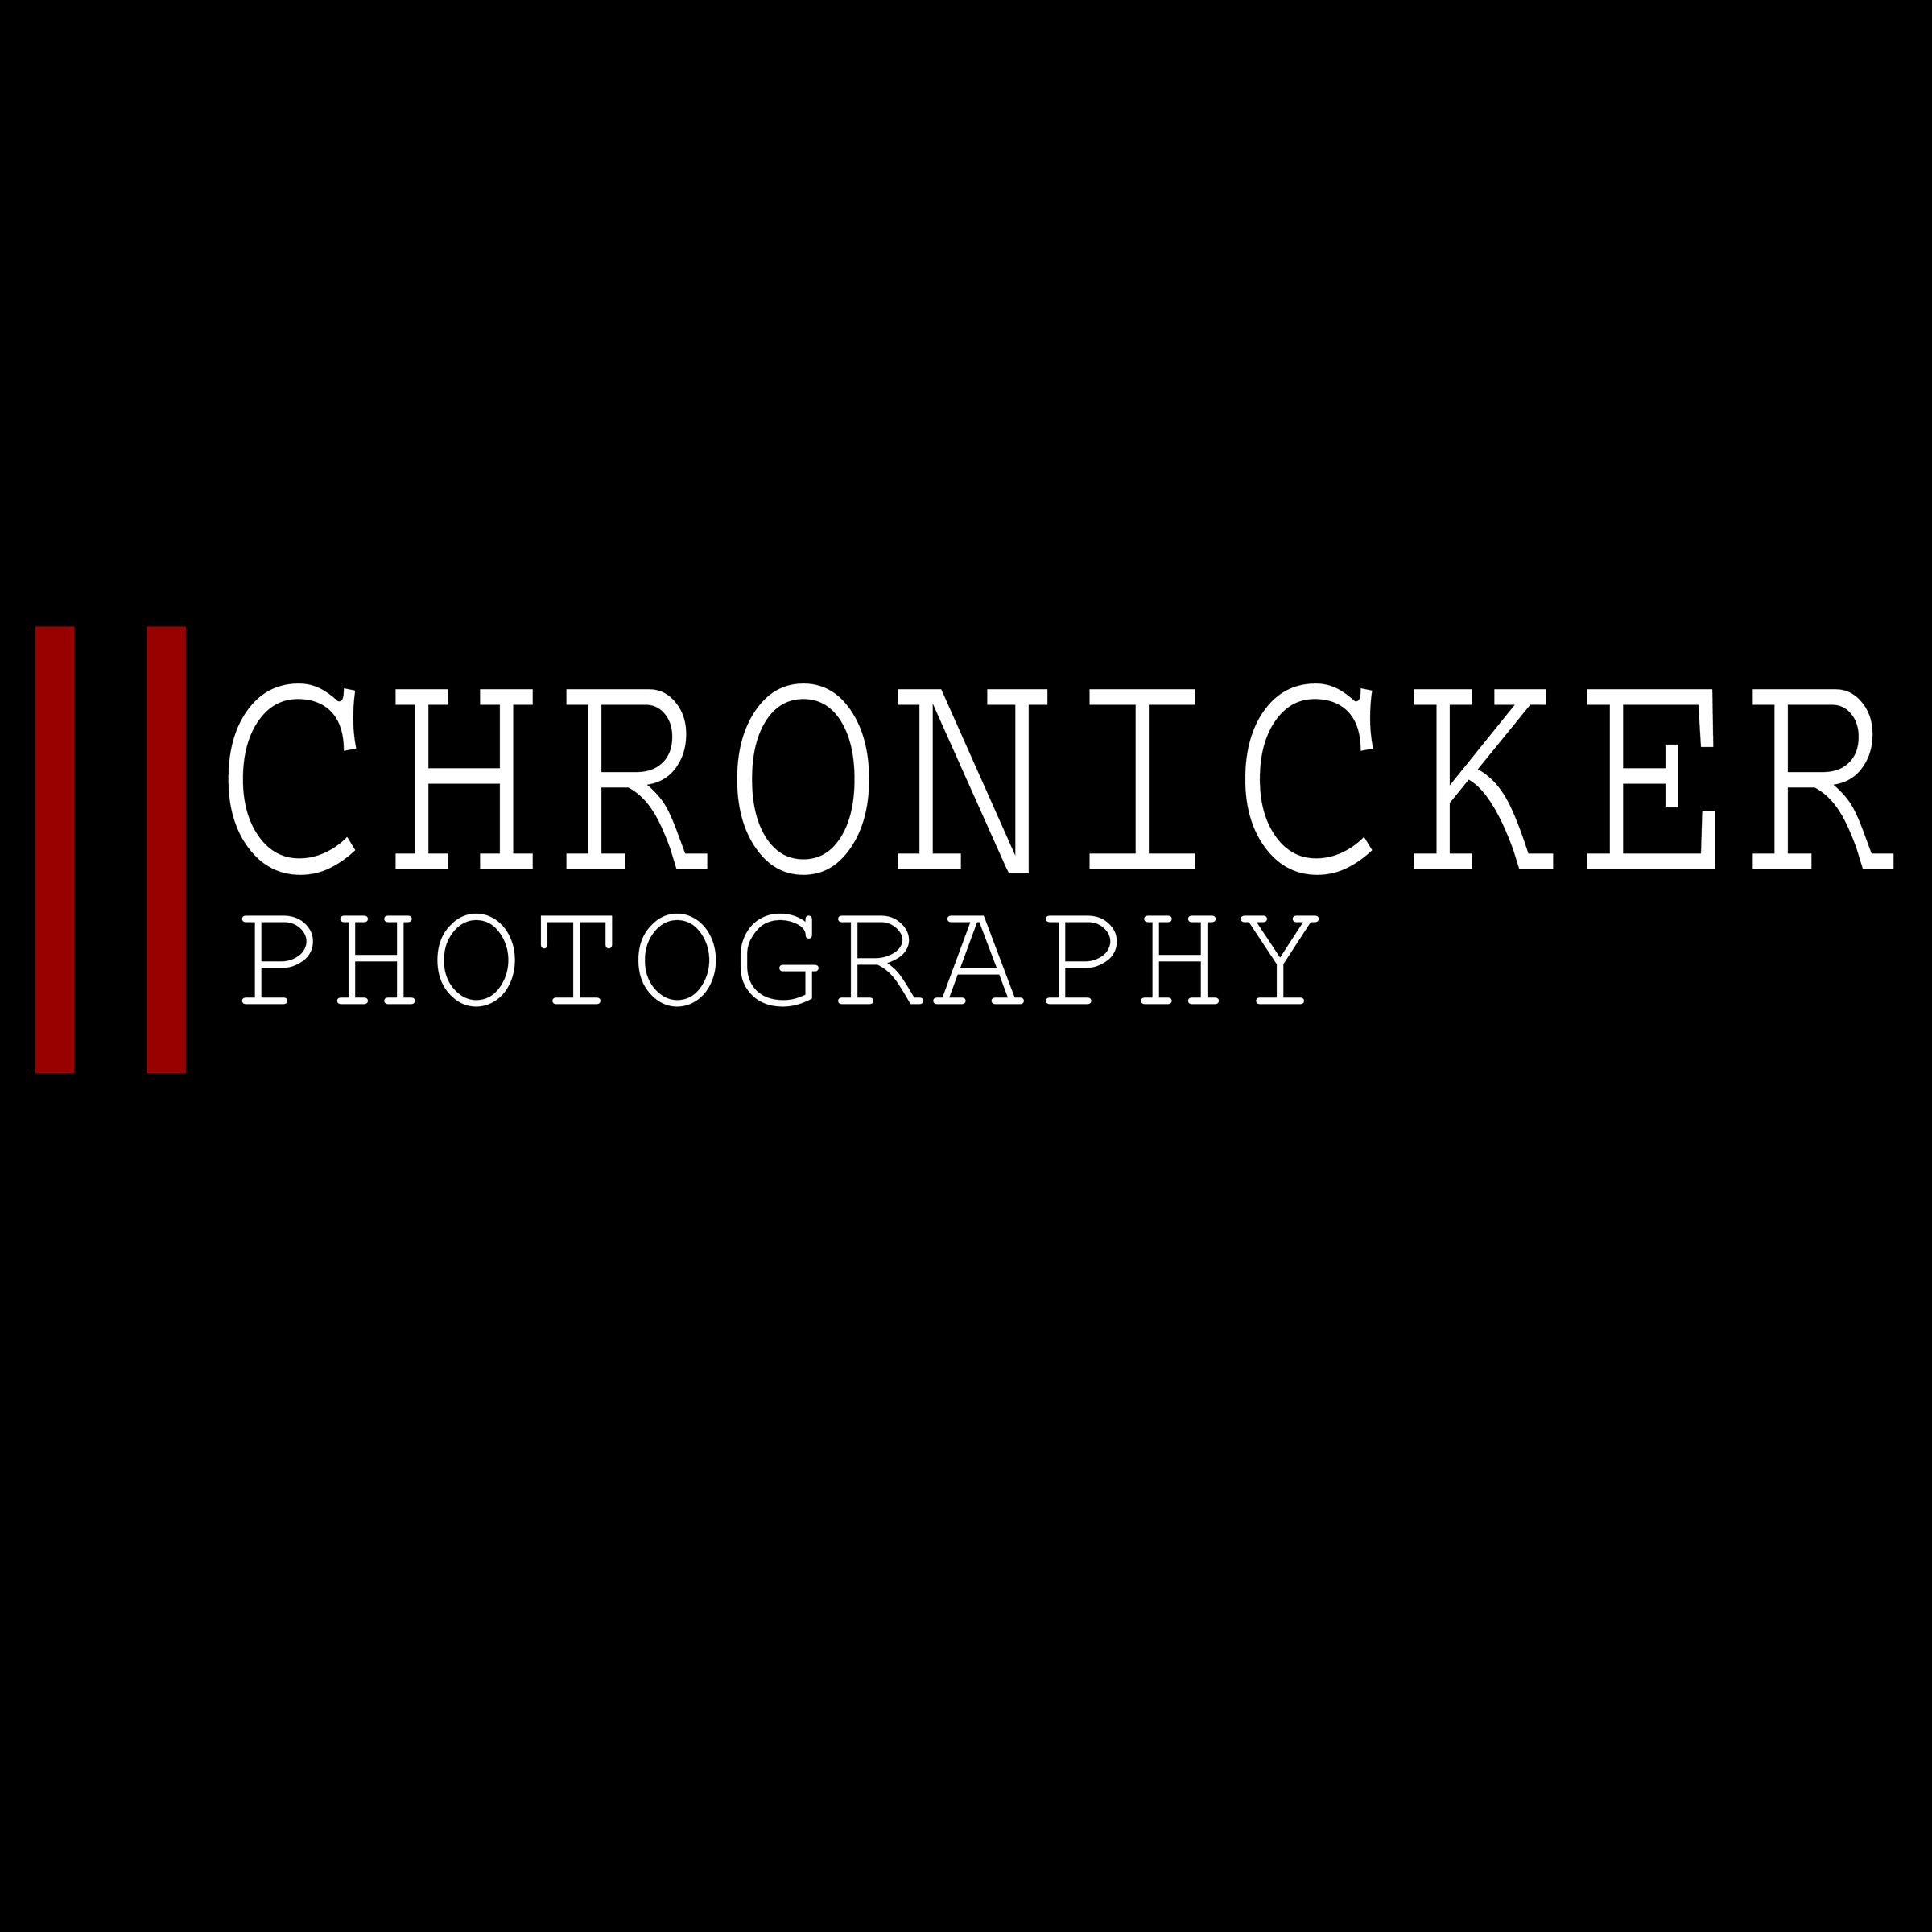 Chronicker Photography